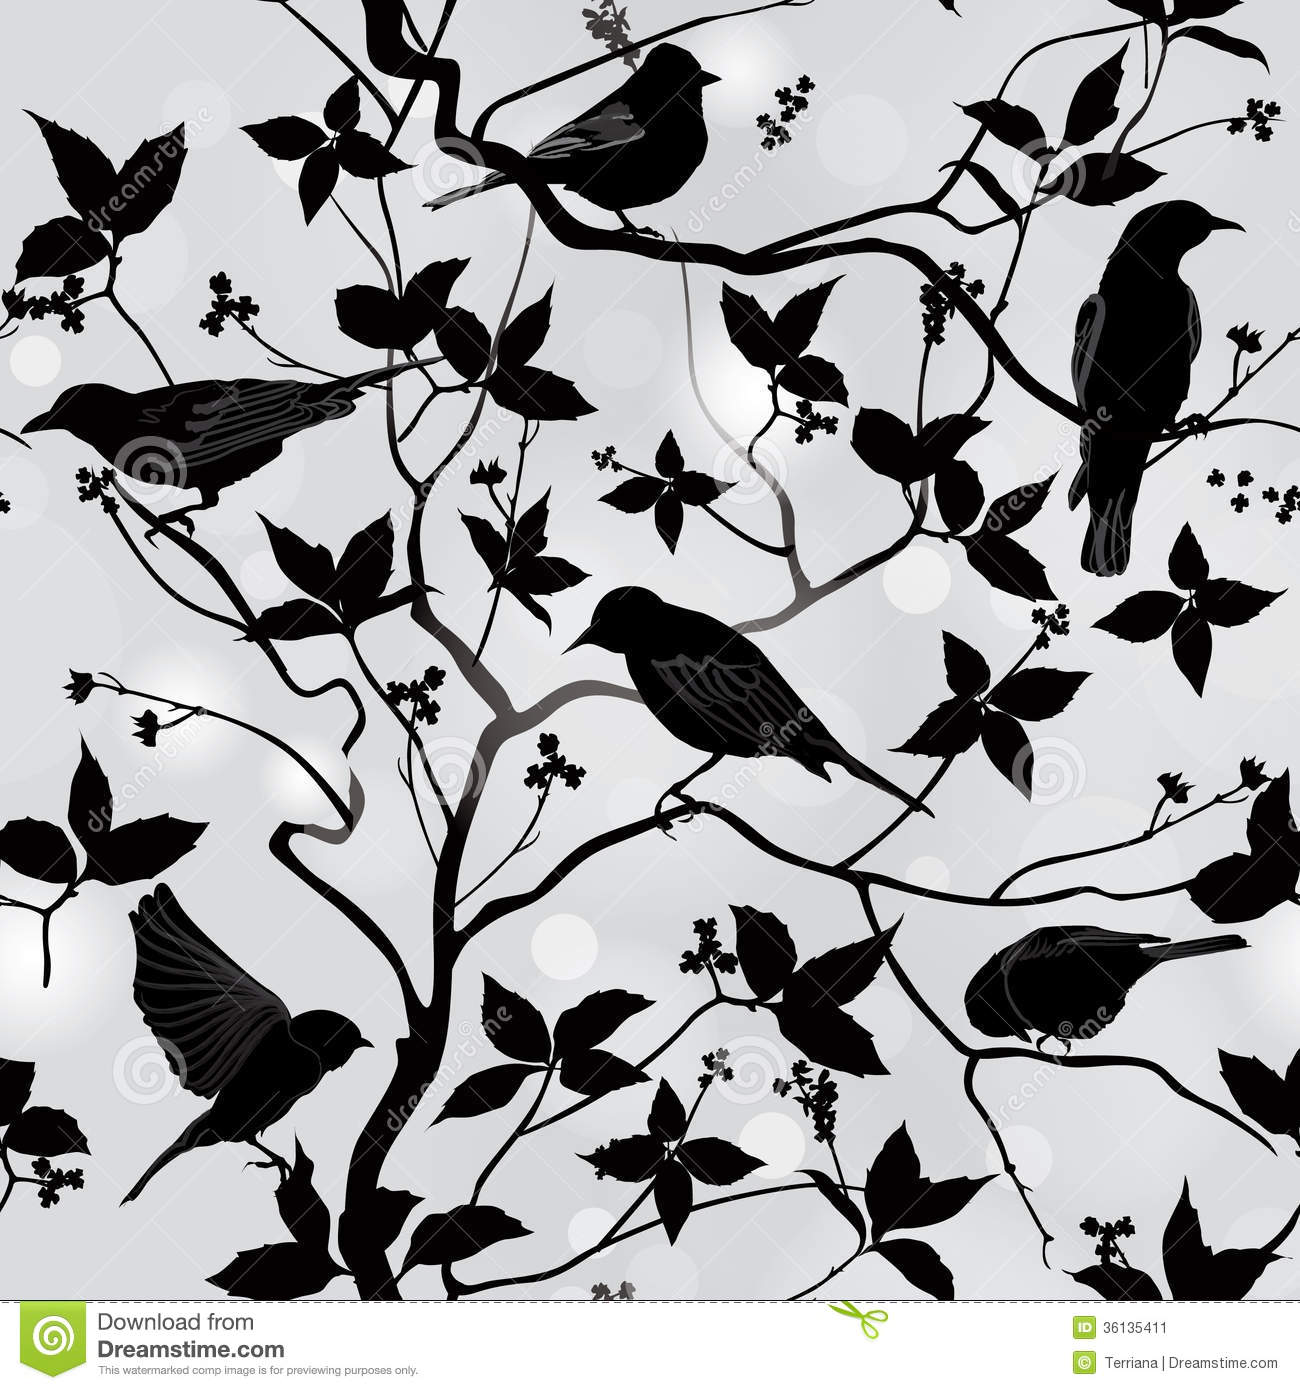 Wallpaper With Birds spring floral seamless wallpaper with birds on branches stock